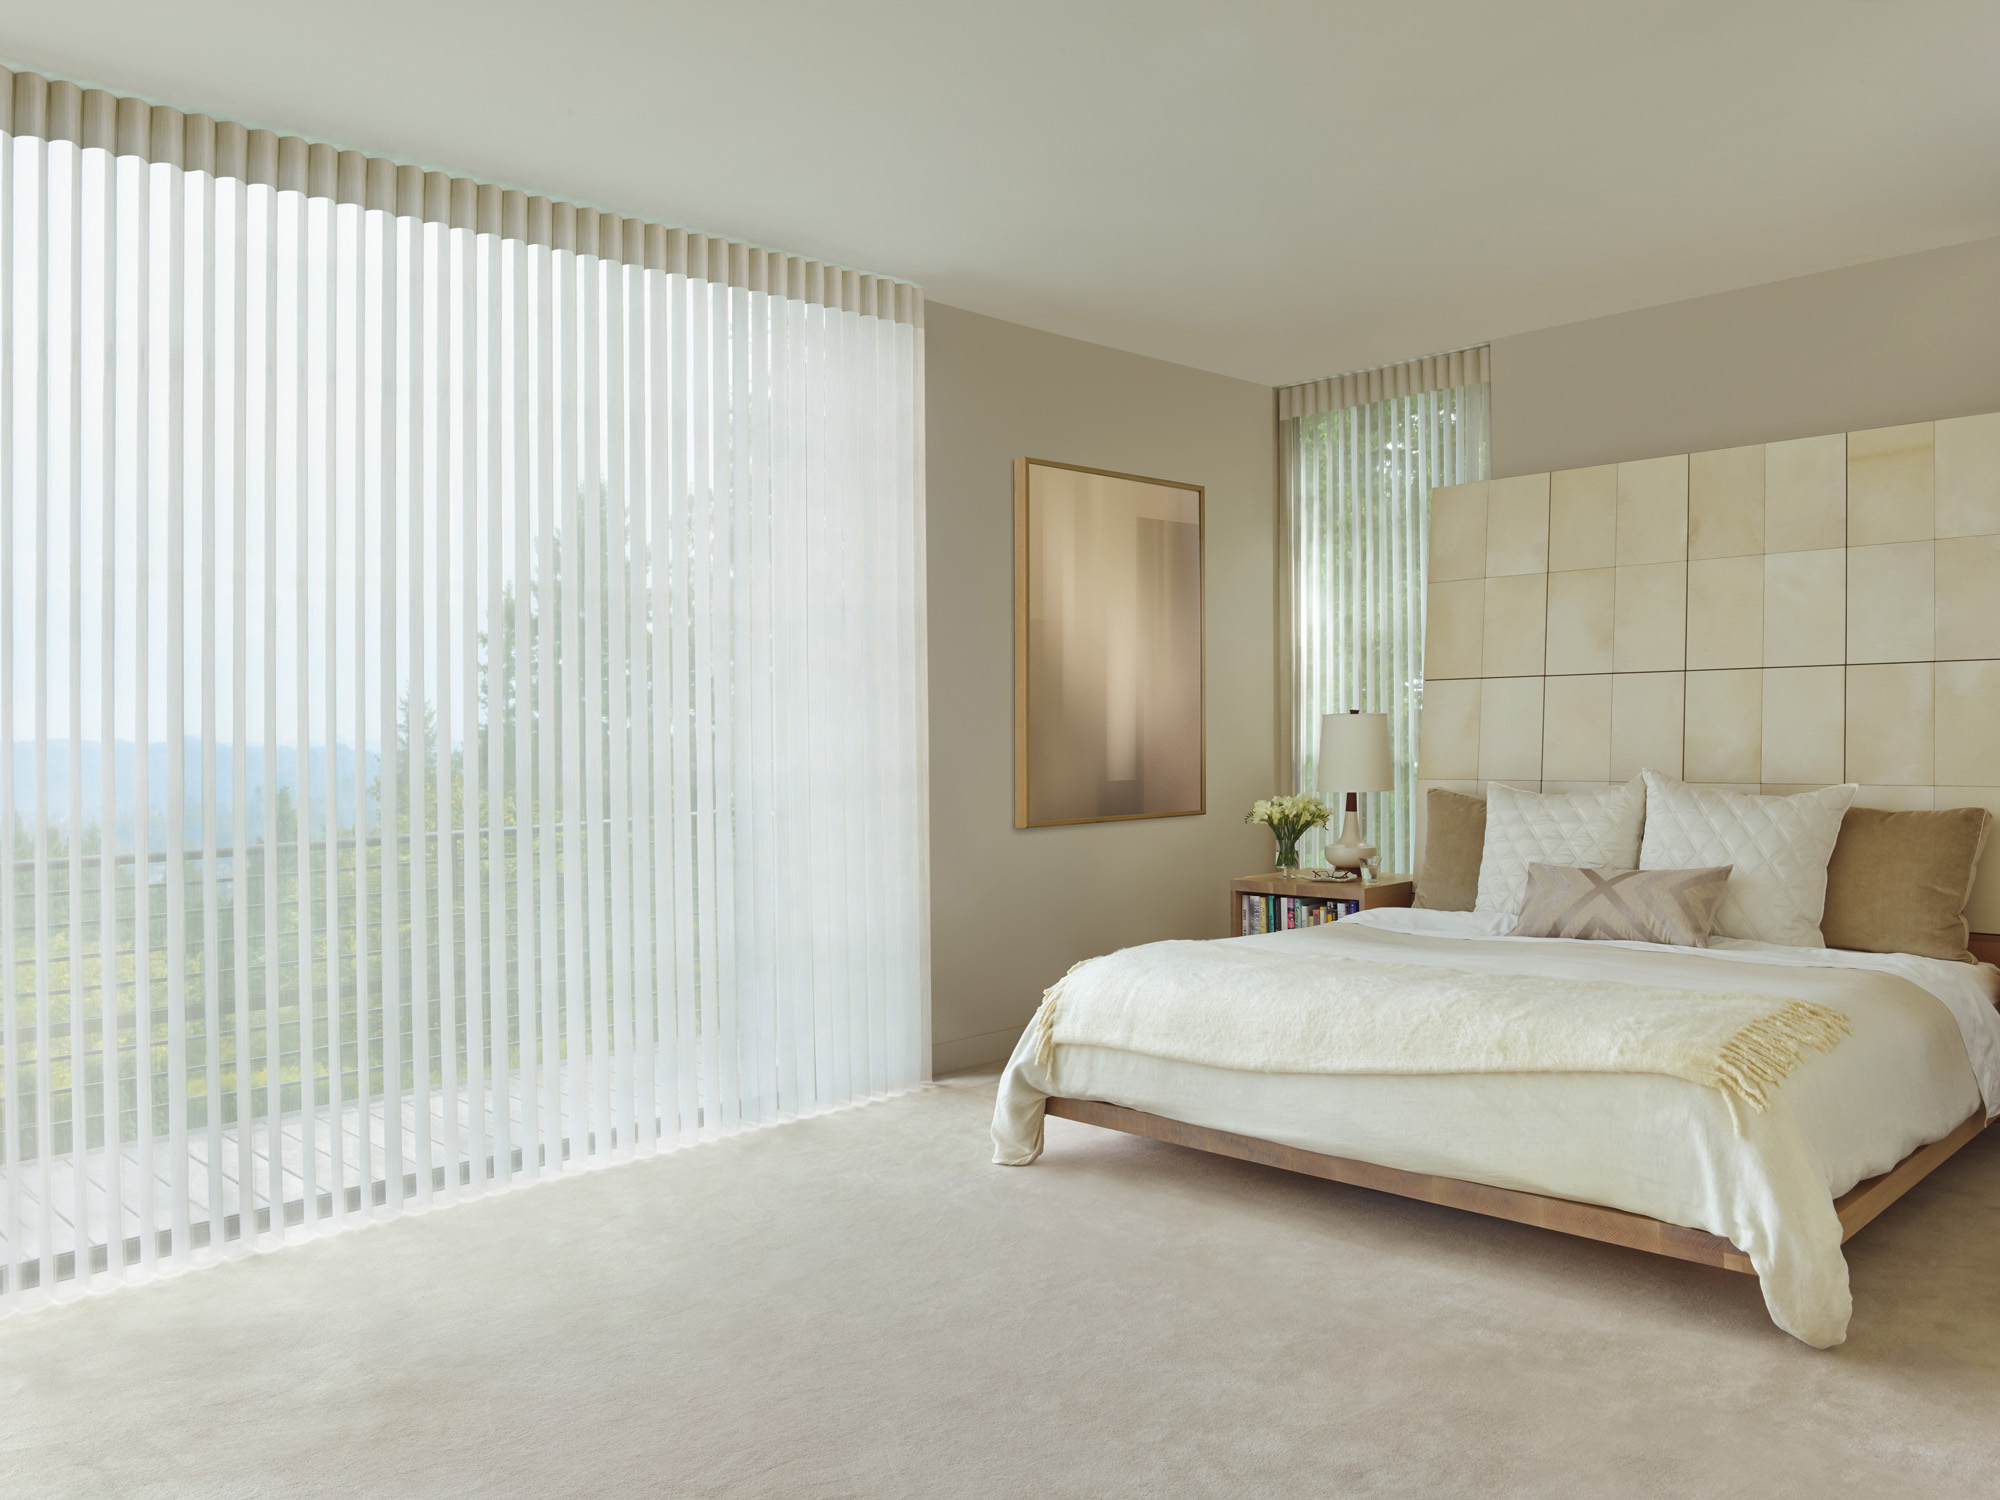 Hunter Douglas Window Coverings Bring Fashion And Function